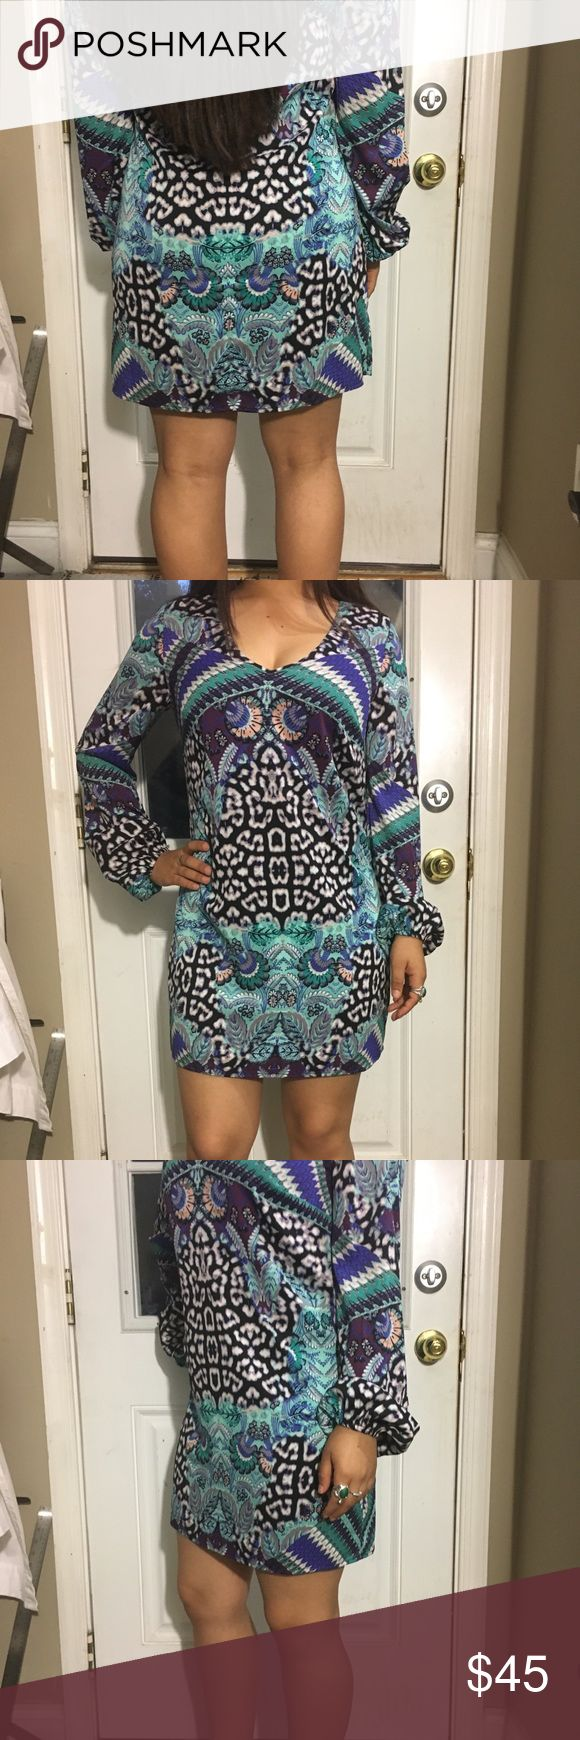 """Bebe dress Beautiful dress. It has no stretch. Person who model it for me is 5 2"""" around 130 lbs. hope this helps. Let me know if you have any questions. New tags. bebe Dresses Long Sleeve"""